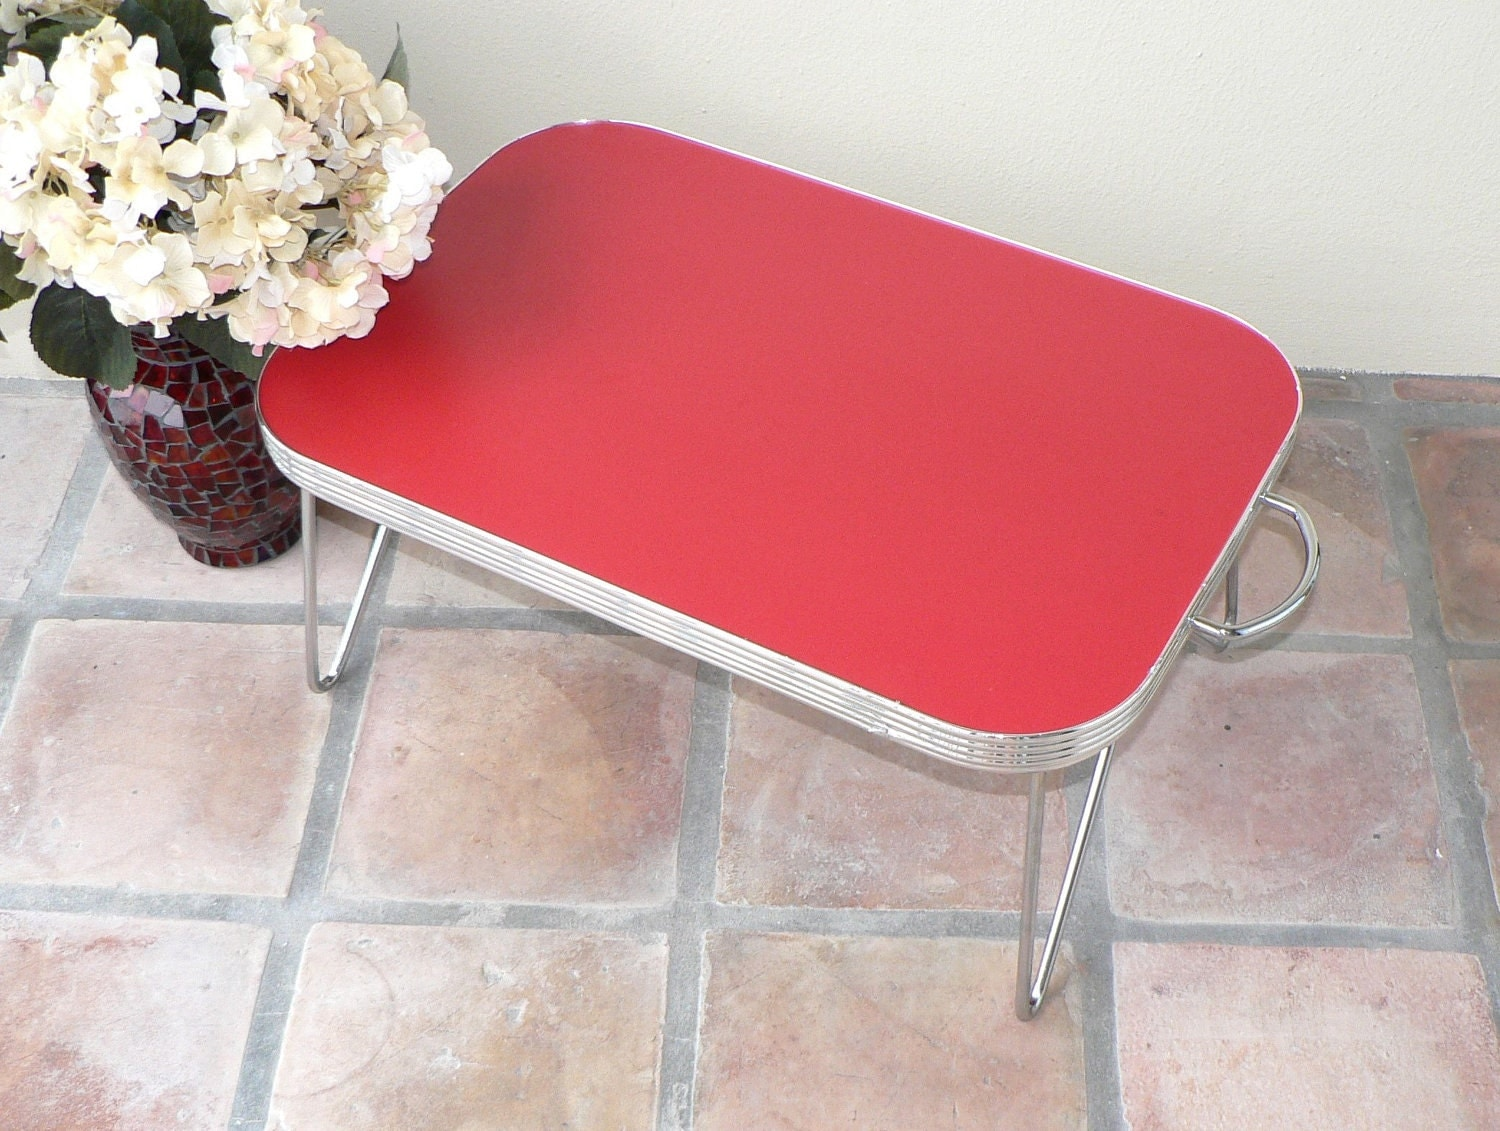 Vintage formica table folding table lap table bed table - Retro formica table ...